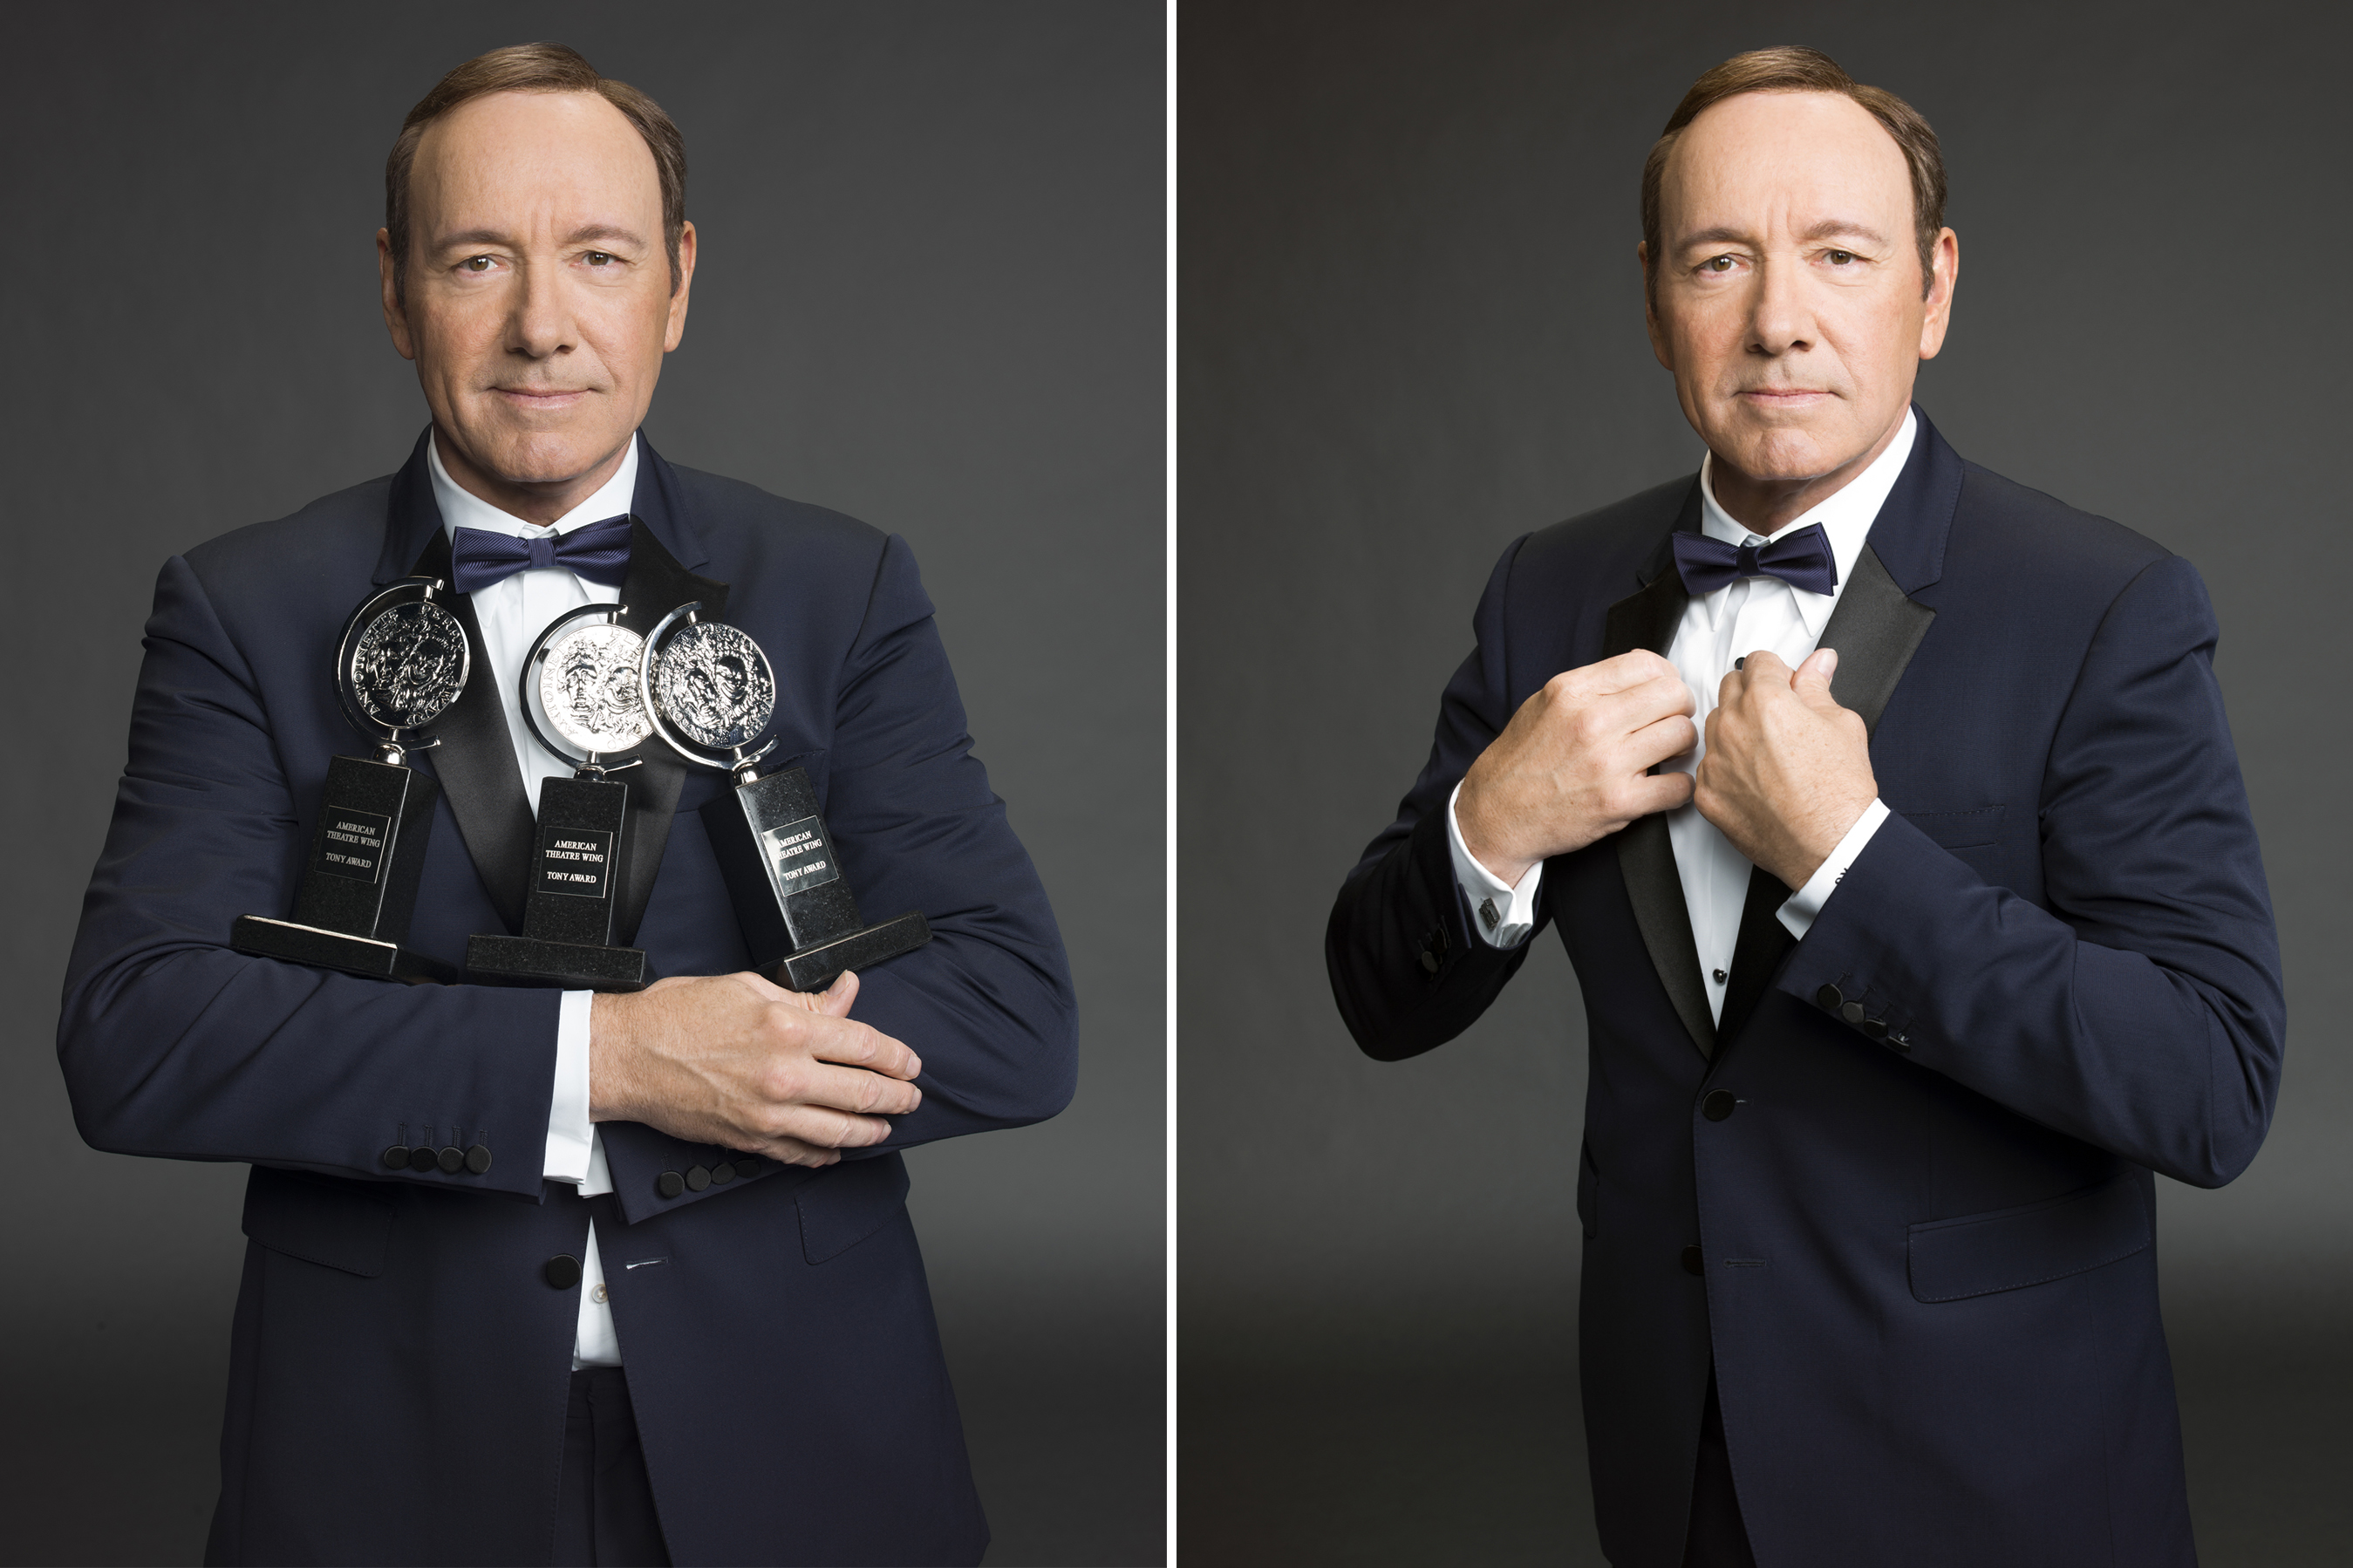 Oscar, Golden Globe and Tony Award-winning actor Kevin Spacey will host THE 71st ANNUAL TONY AWARDS, live from the historic Radio City Music Hall in New York City, Sunday, June 11.